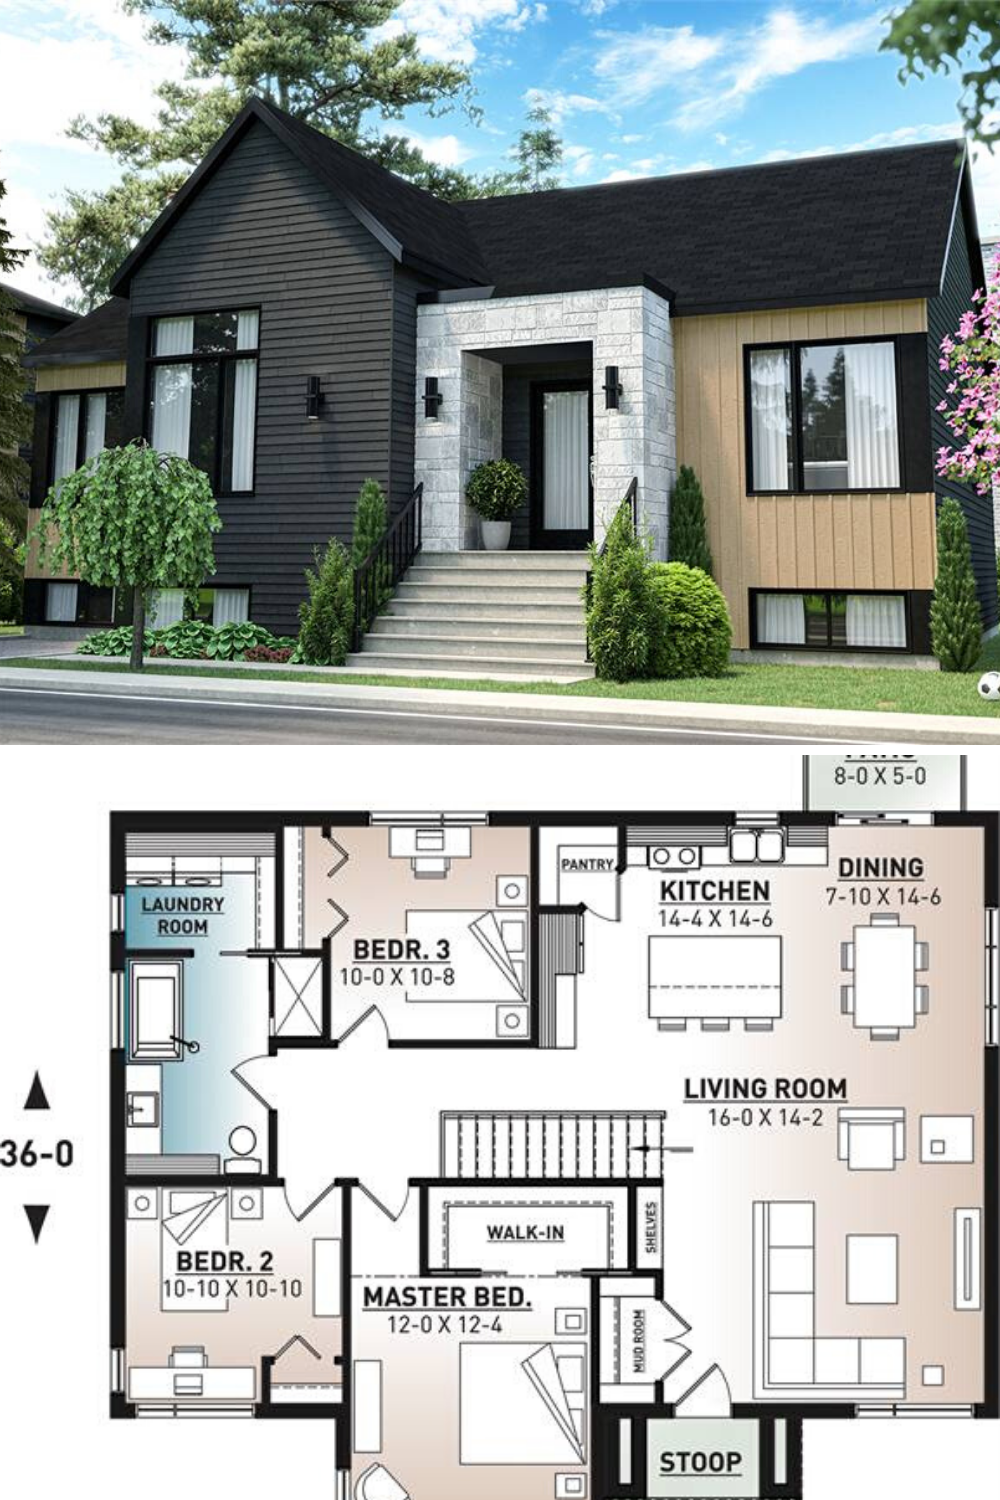 3 Bedroom Single Story Scandinavian Style Home Floor Plan Modern Style House Plans Contemporary House Plans Scandinavian Modern House